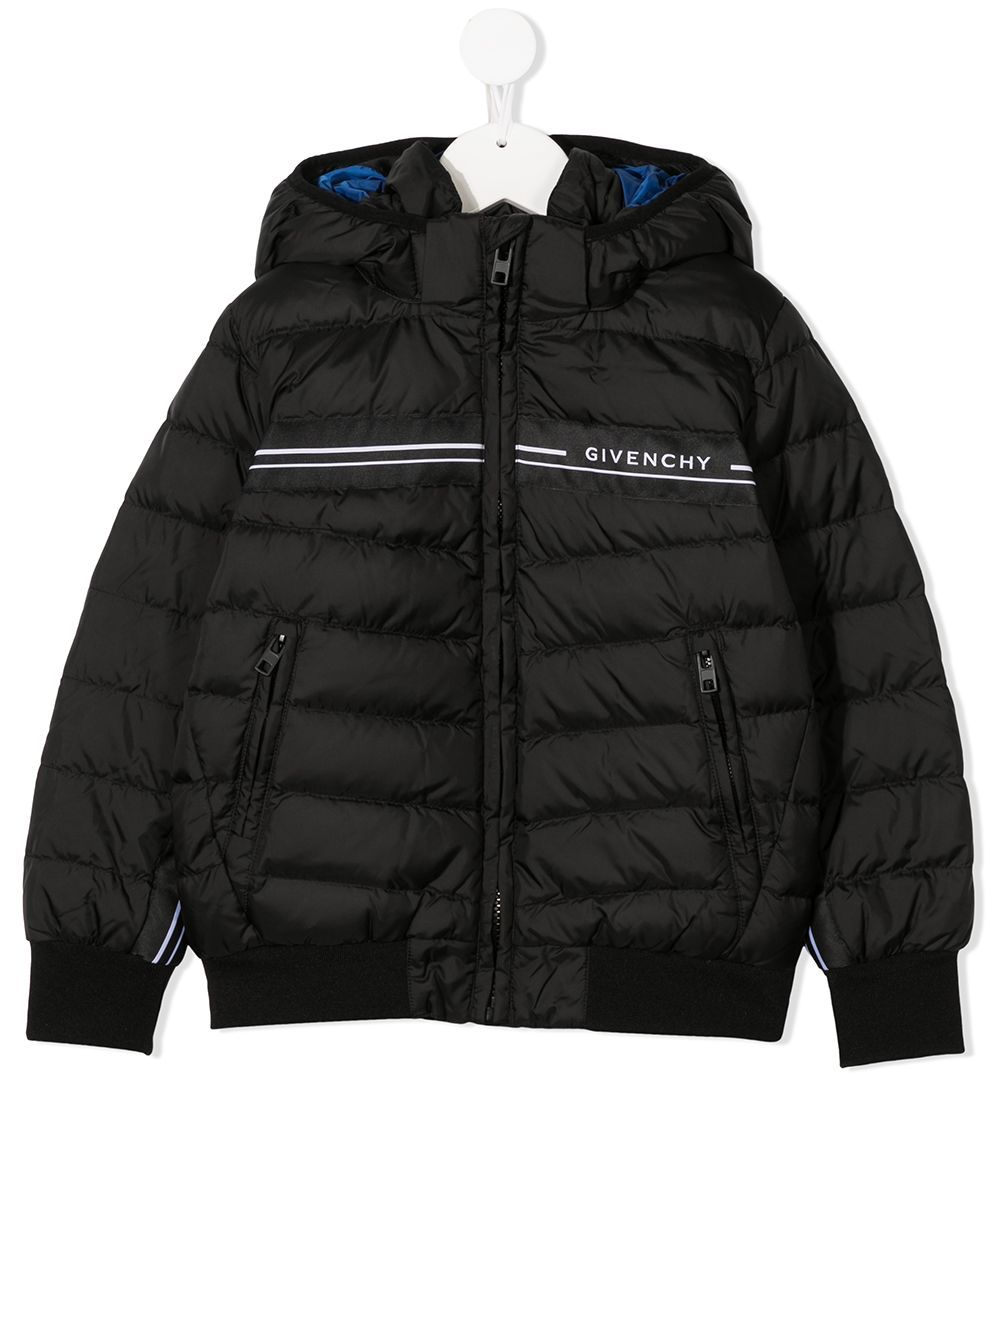 GIVENCHY KIDS Stripe Logo Coat Black/Blue